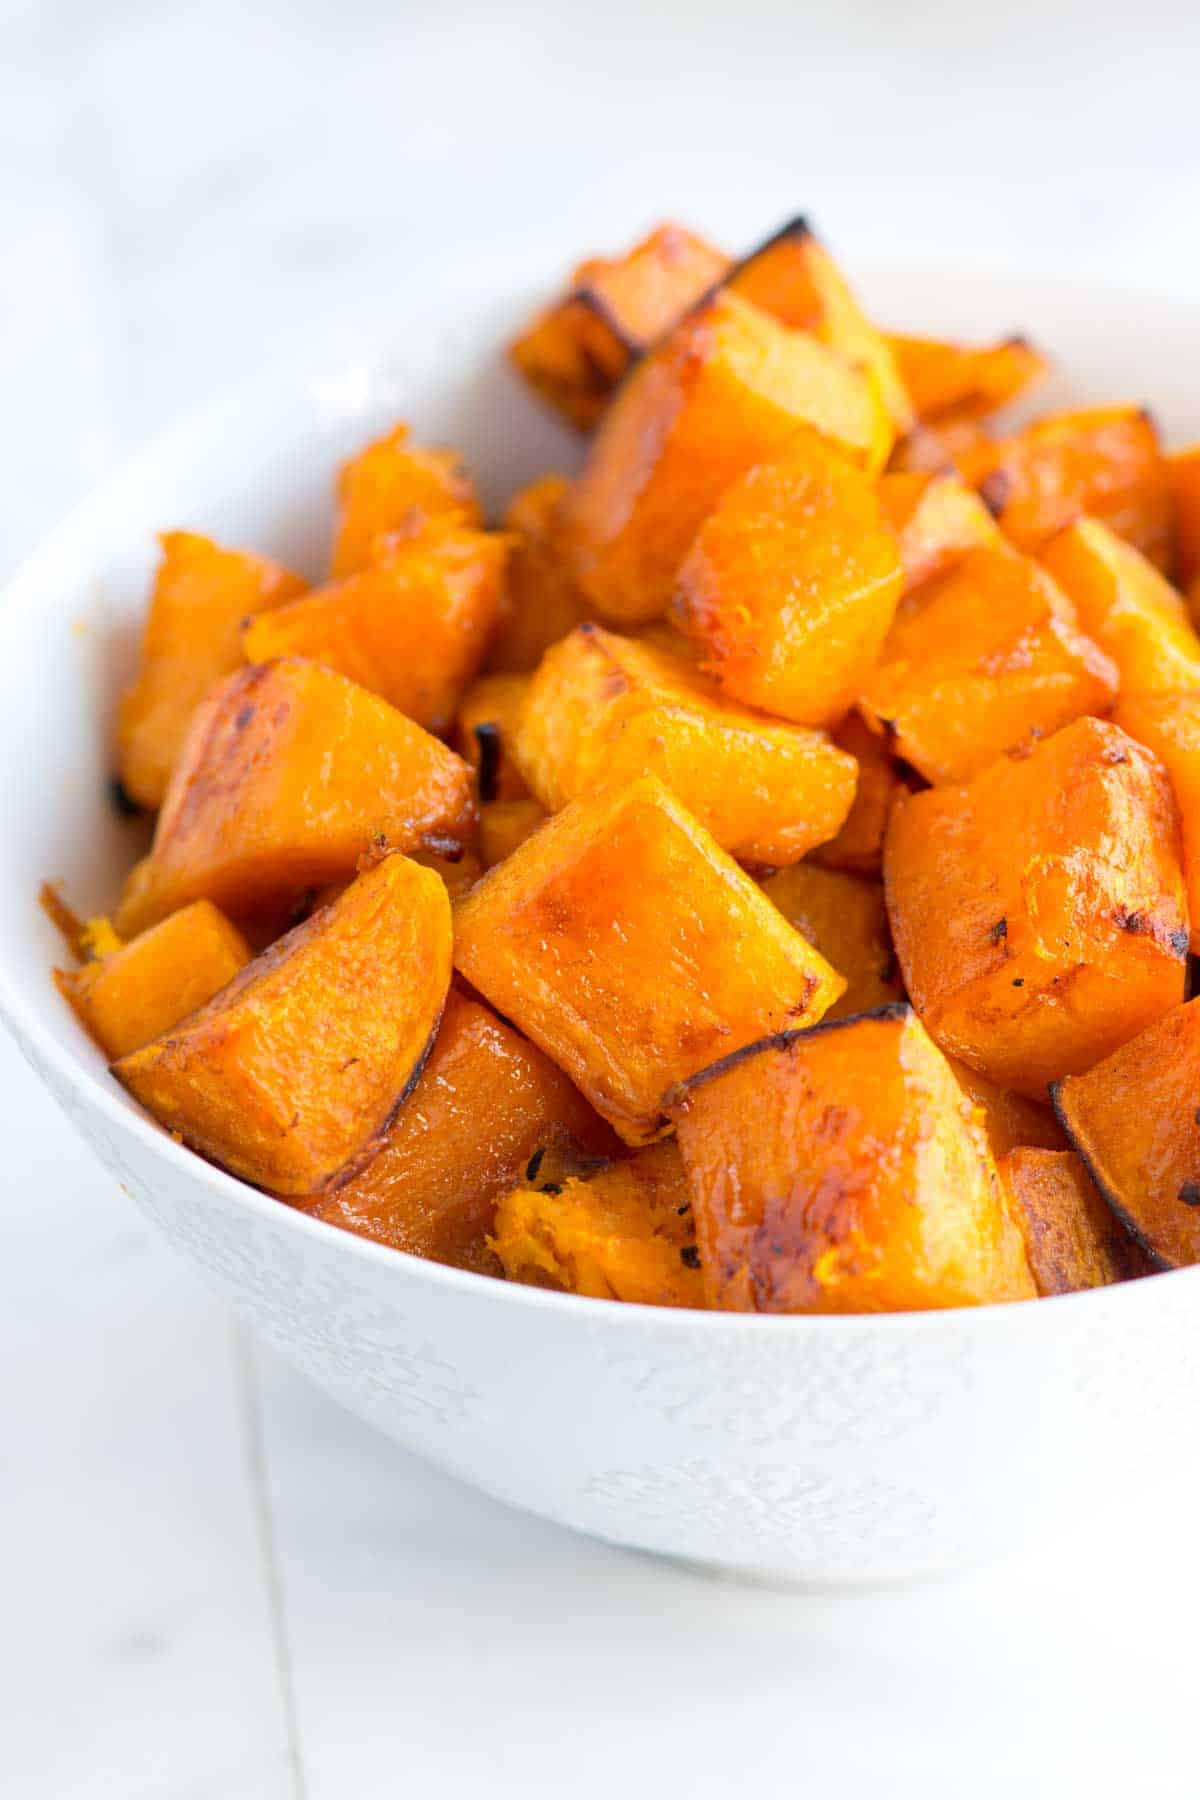 Our best tips for roasting butternut squash